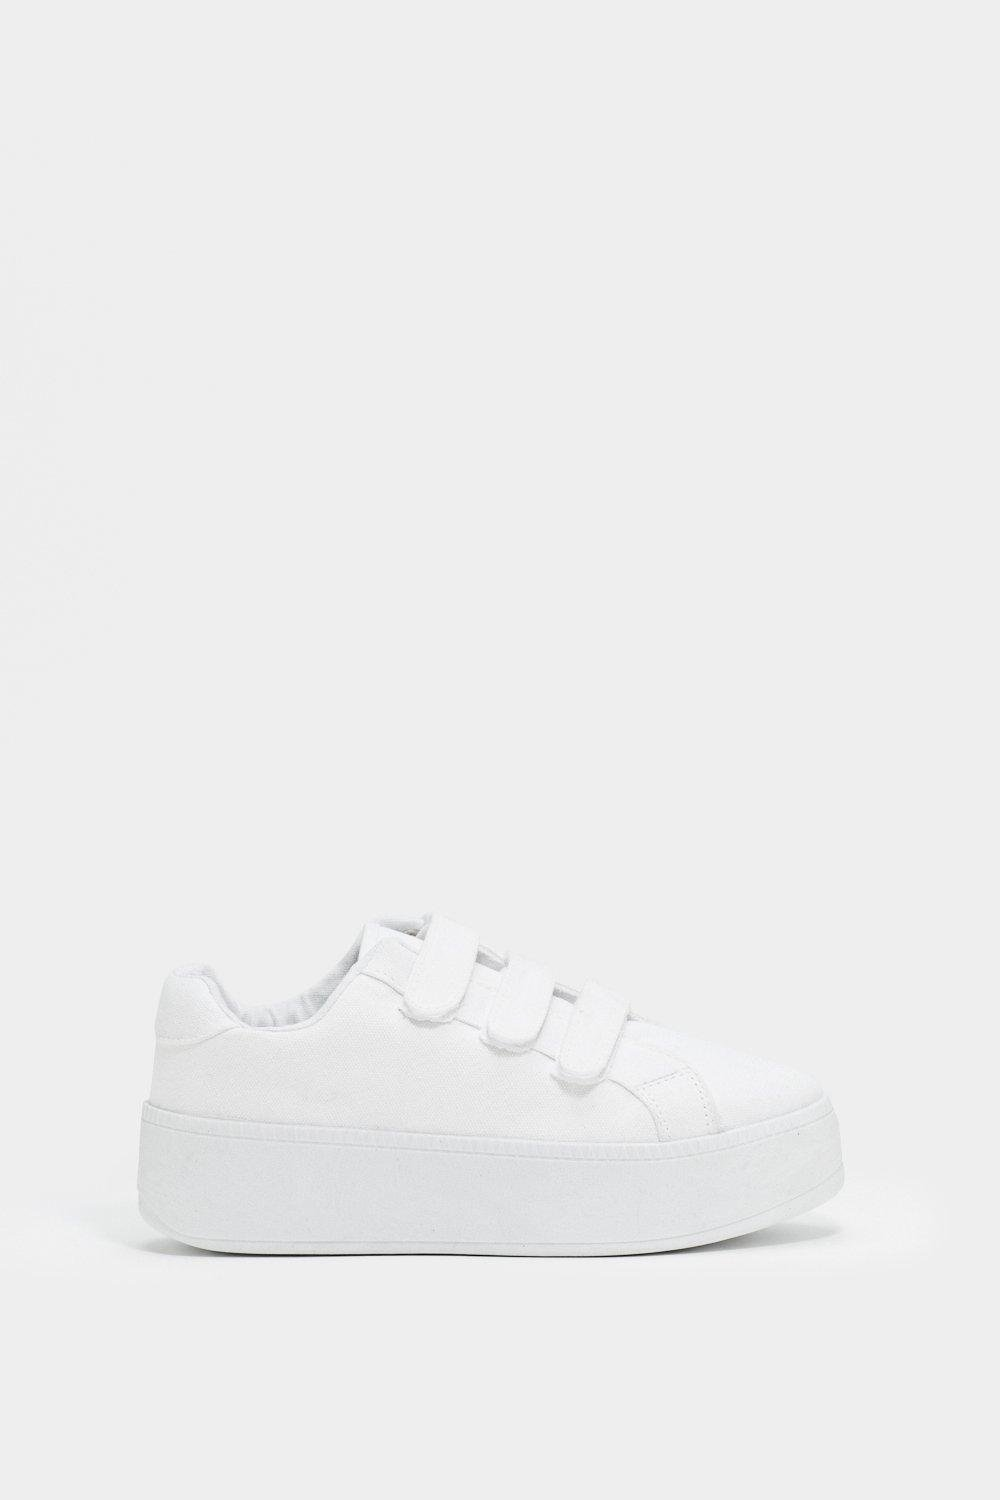 Nasty Gal Leather You Raise Me Up Platform Sneaker in White